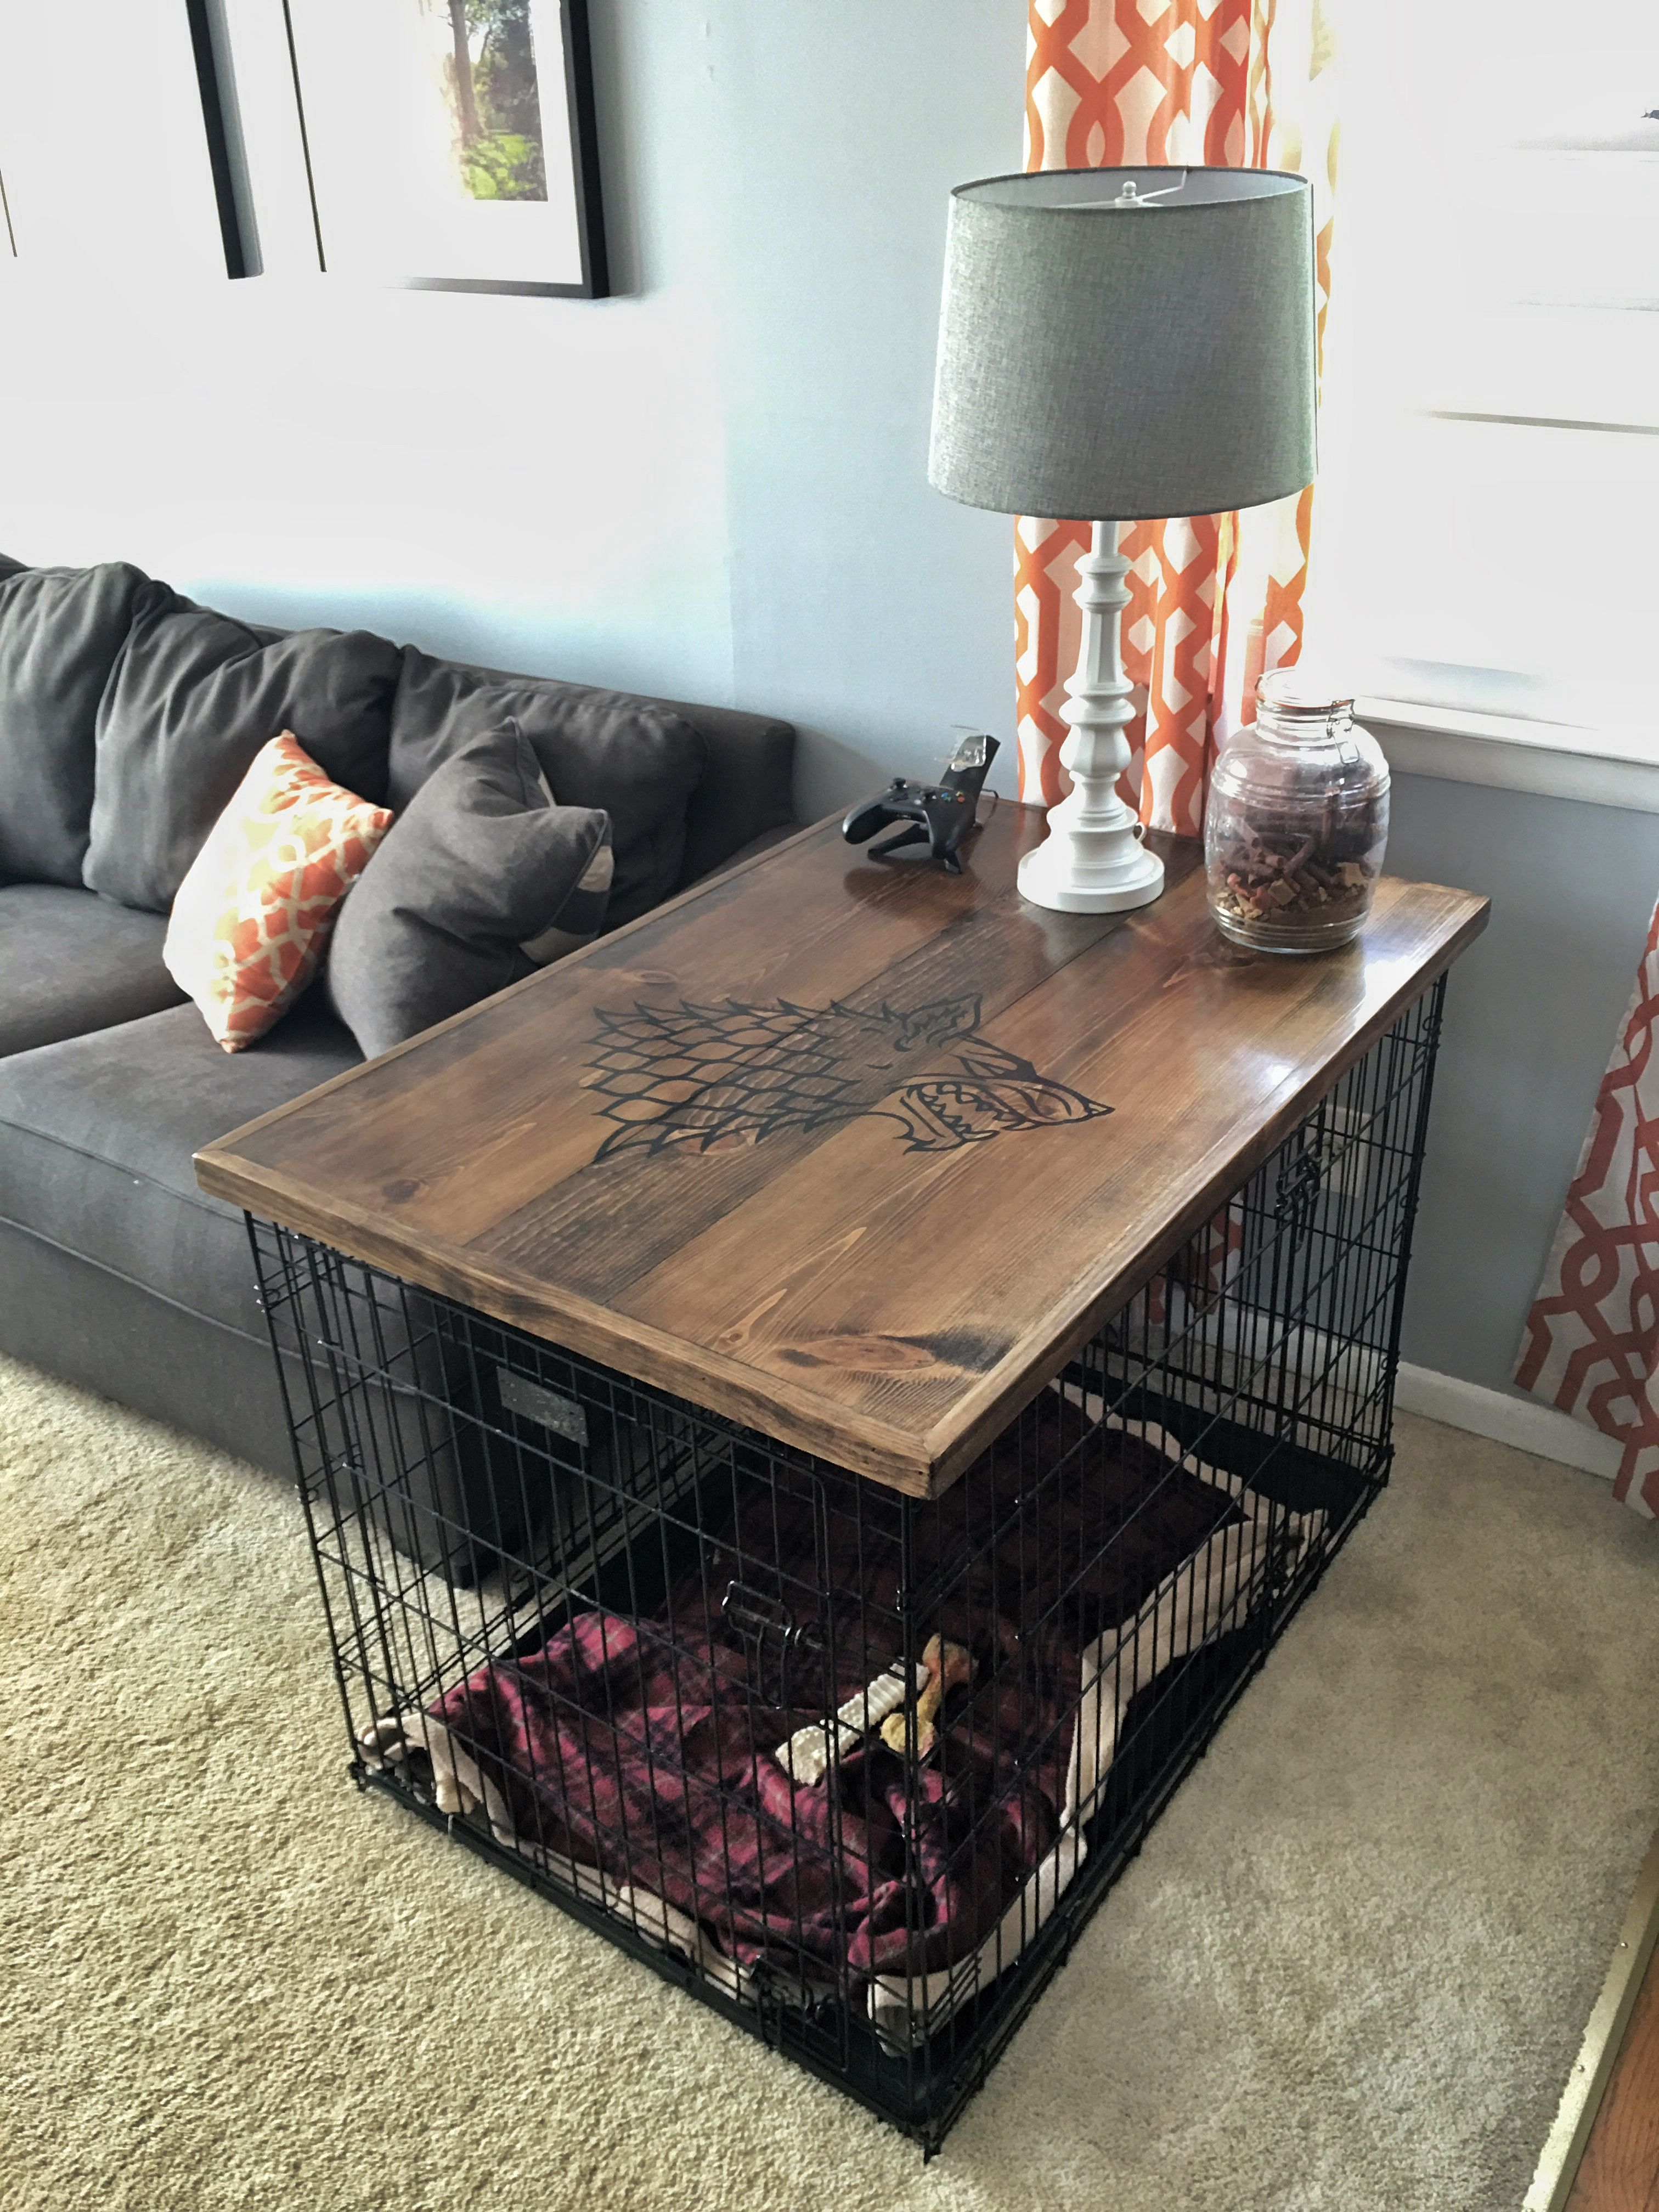 Direwolf Dog Crate Table Top Imgur Dog Crate Table Dog Crate